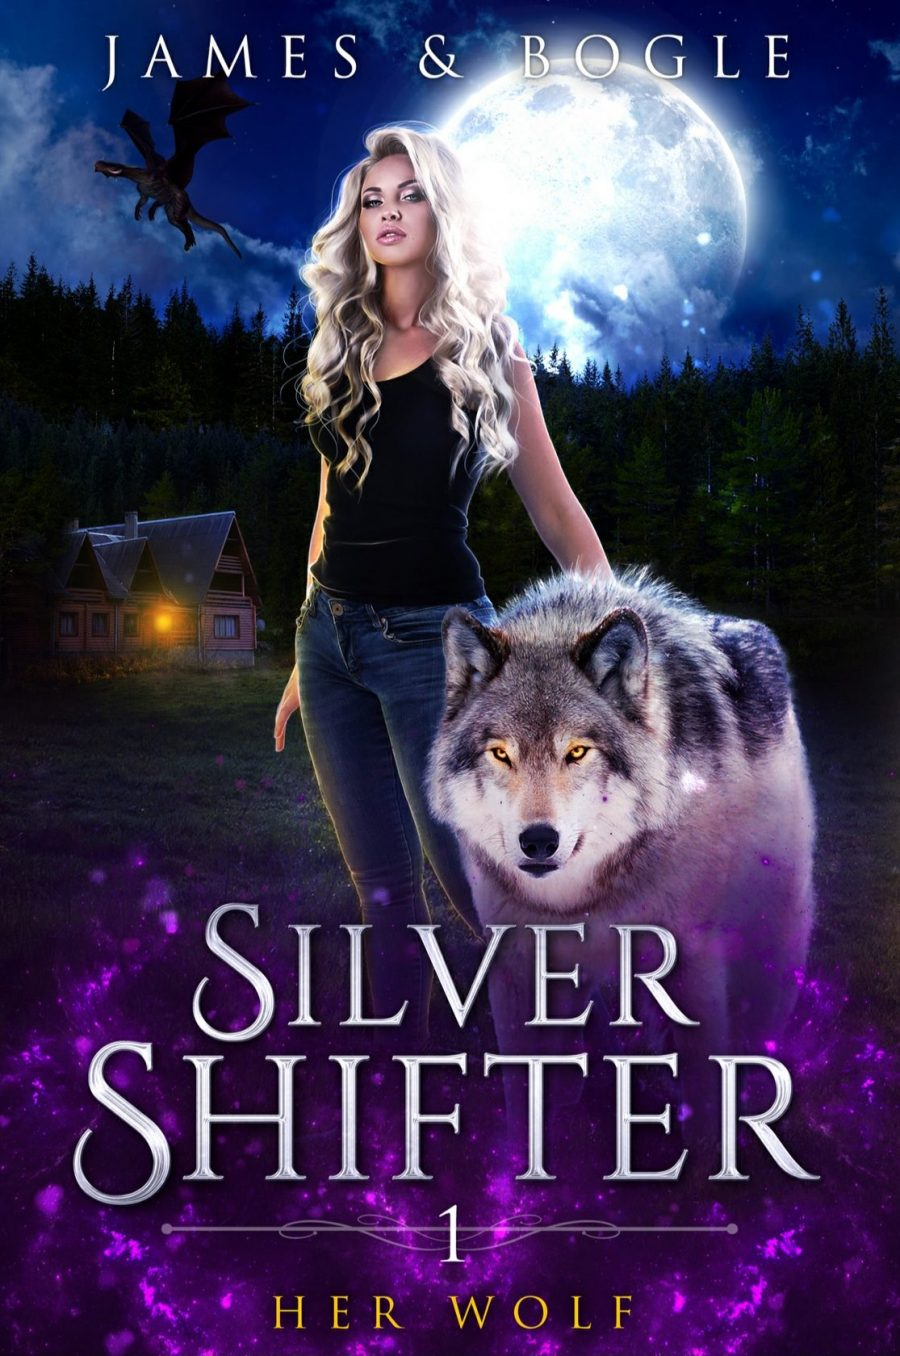 Her Wolf *Silver Shifter - Book 1* by Alexa James and Katherine Bogle - A Book Review #BookReview #WhyChoose #RH #UrbanFantasy #Shifters